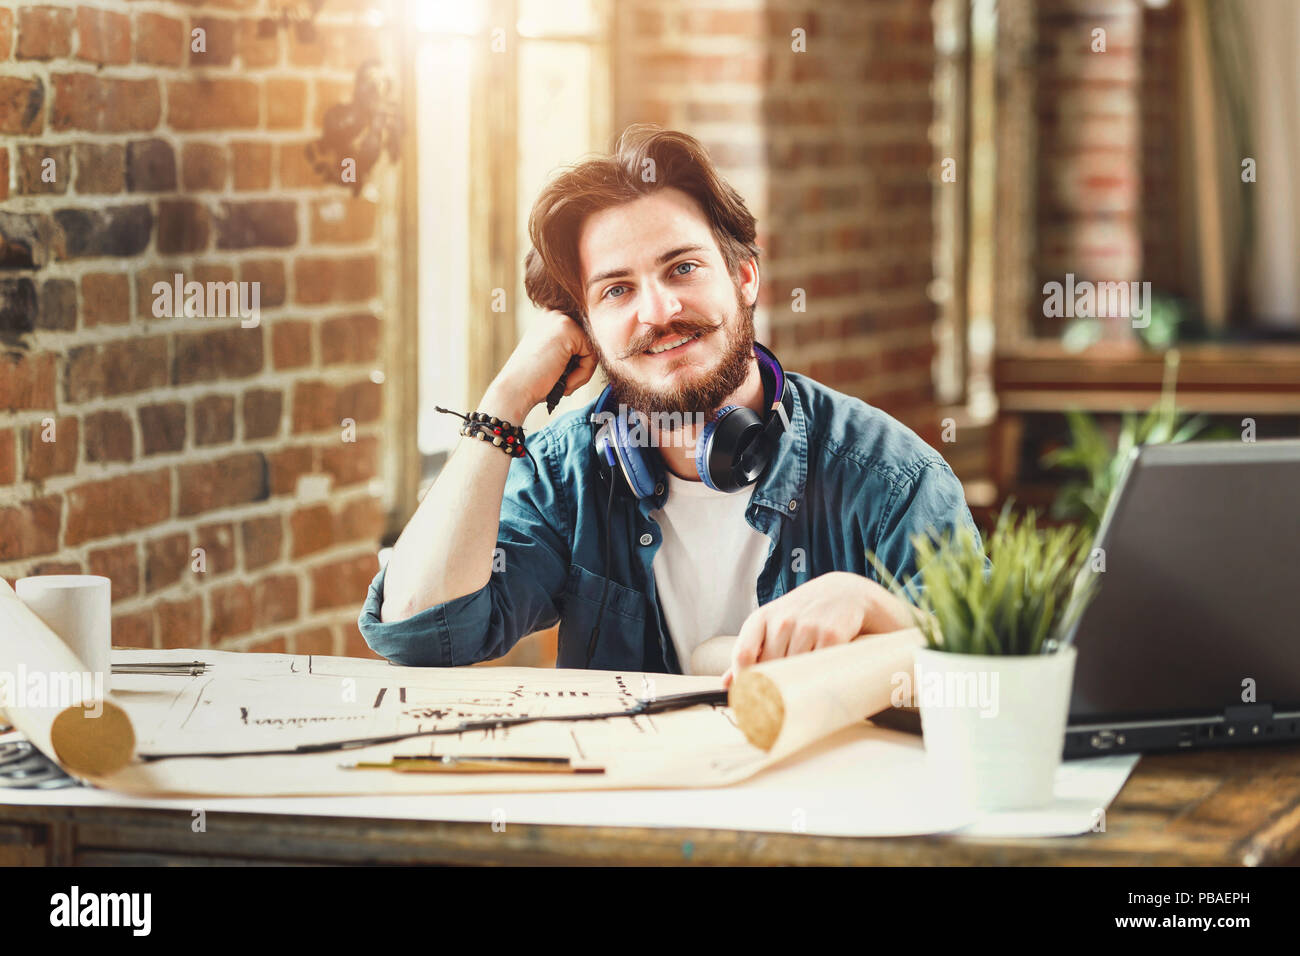 Male bearded architect smiling to the camera sitting at his desk at the office working on building plans copyspace creativity engineering project developing worker occupation career successful entrepreneur. - Stock Image